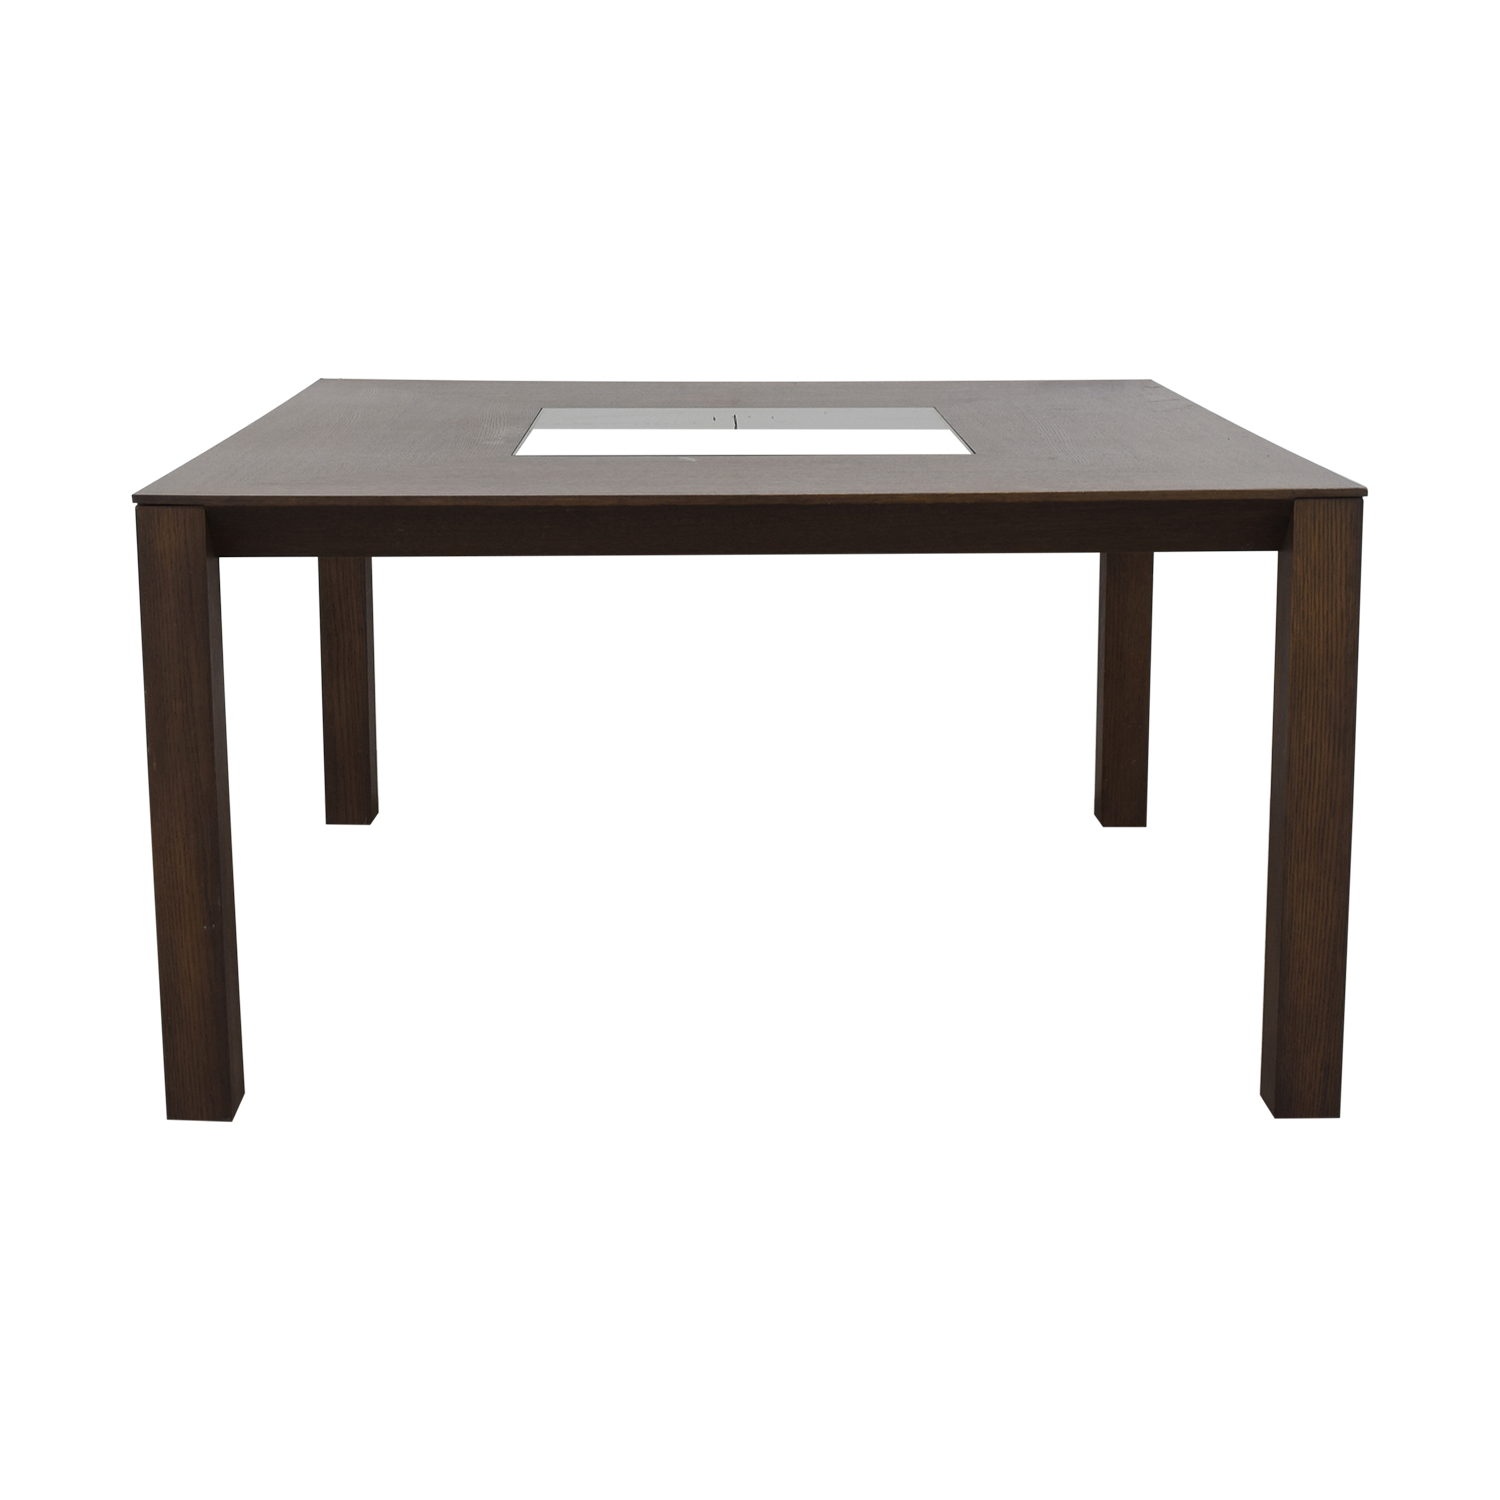 Planum Planum Furniture Square Dining Table with Glass Inlay nyc